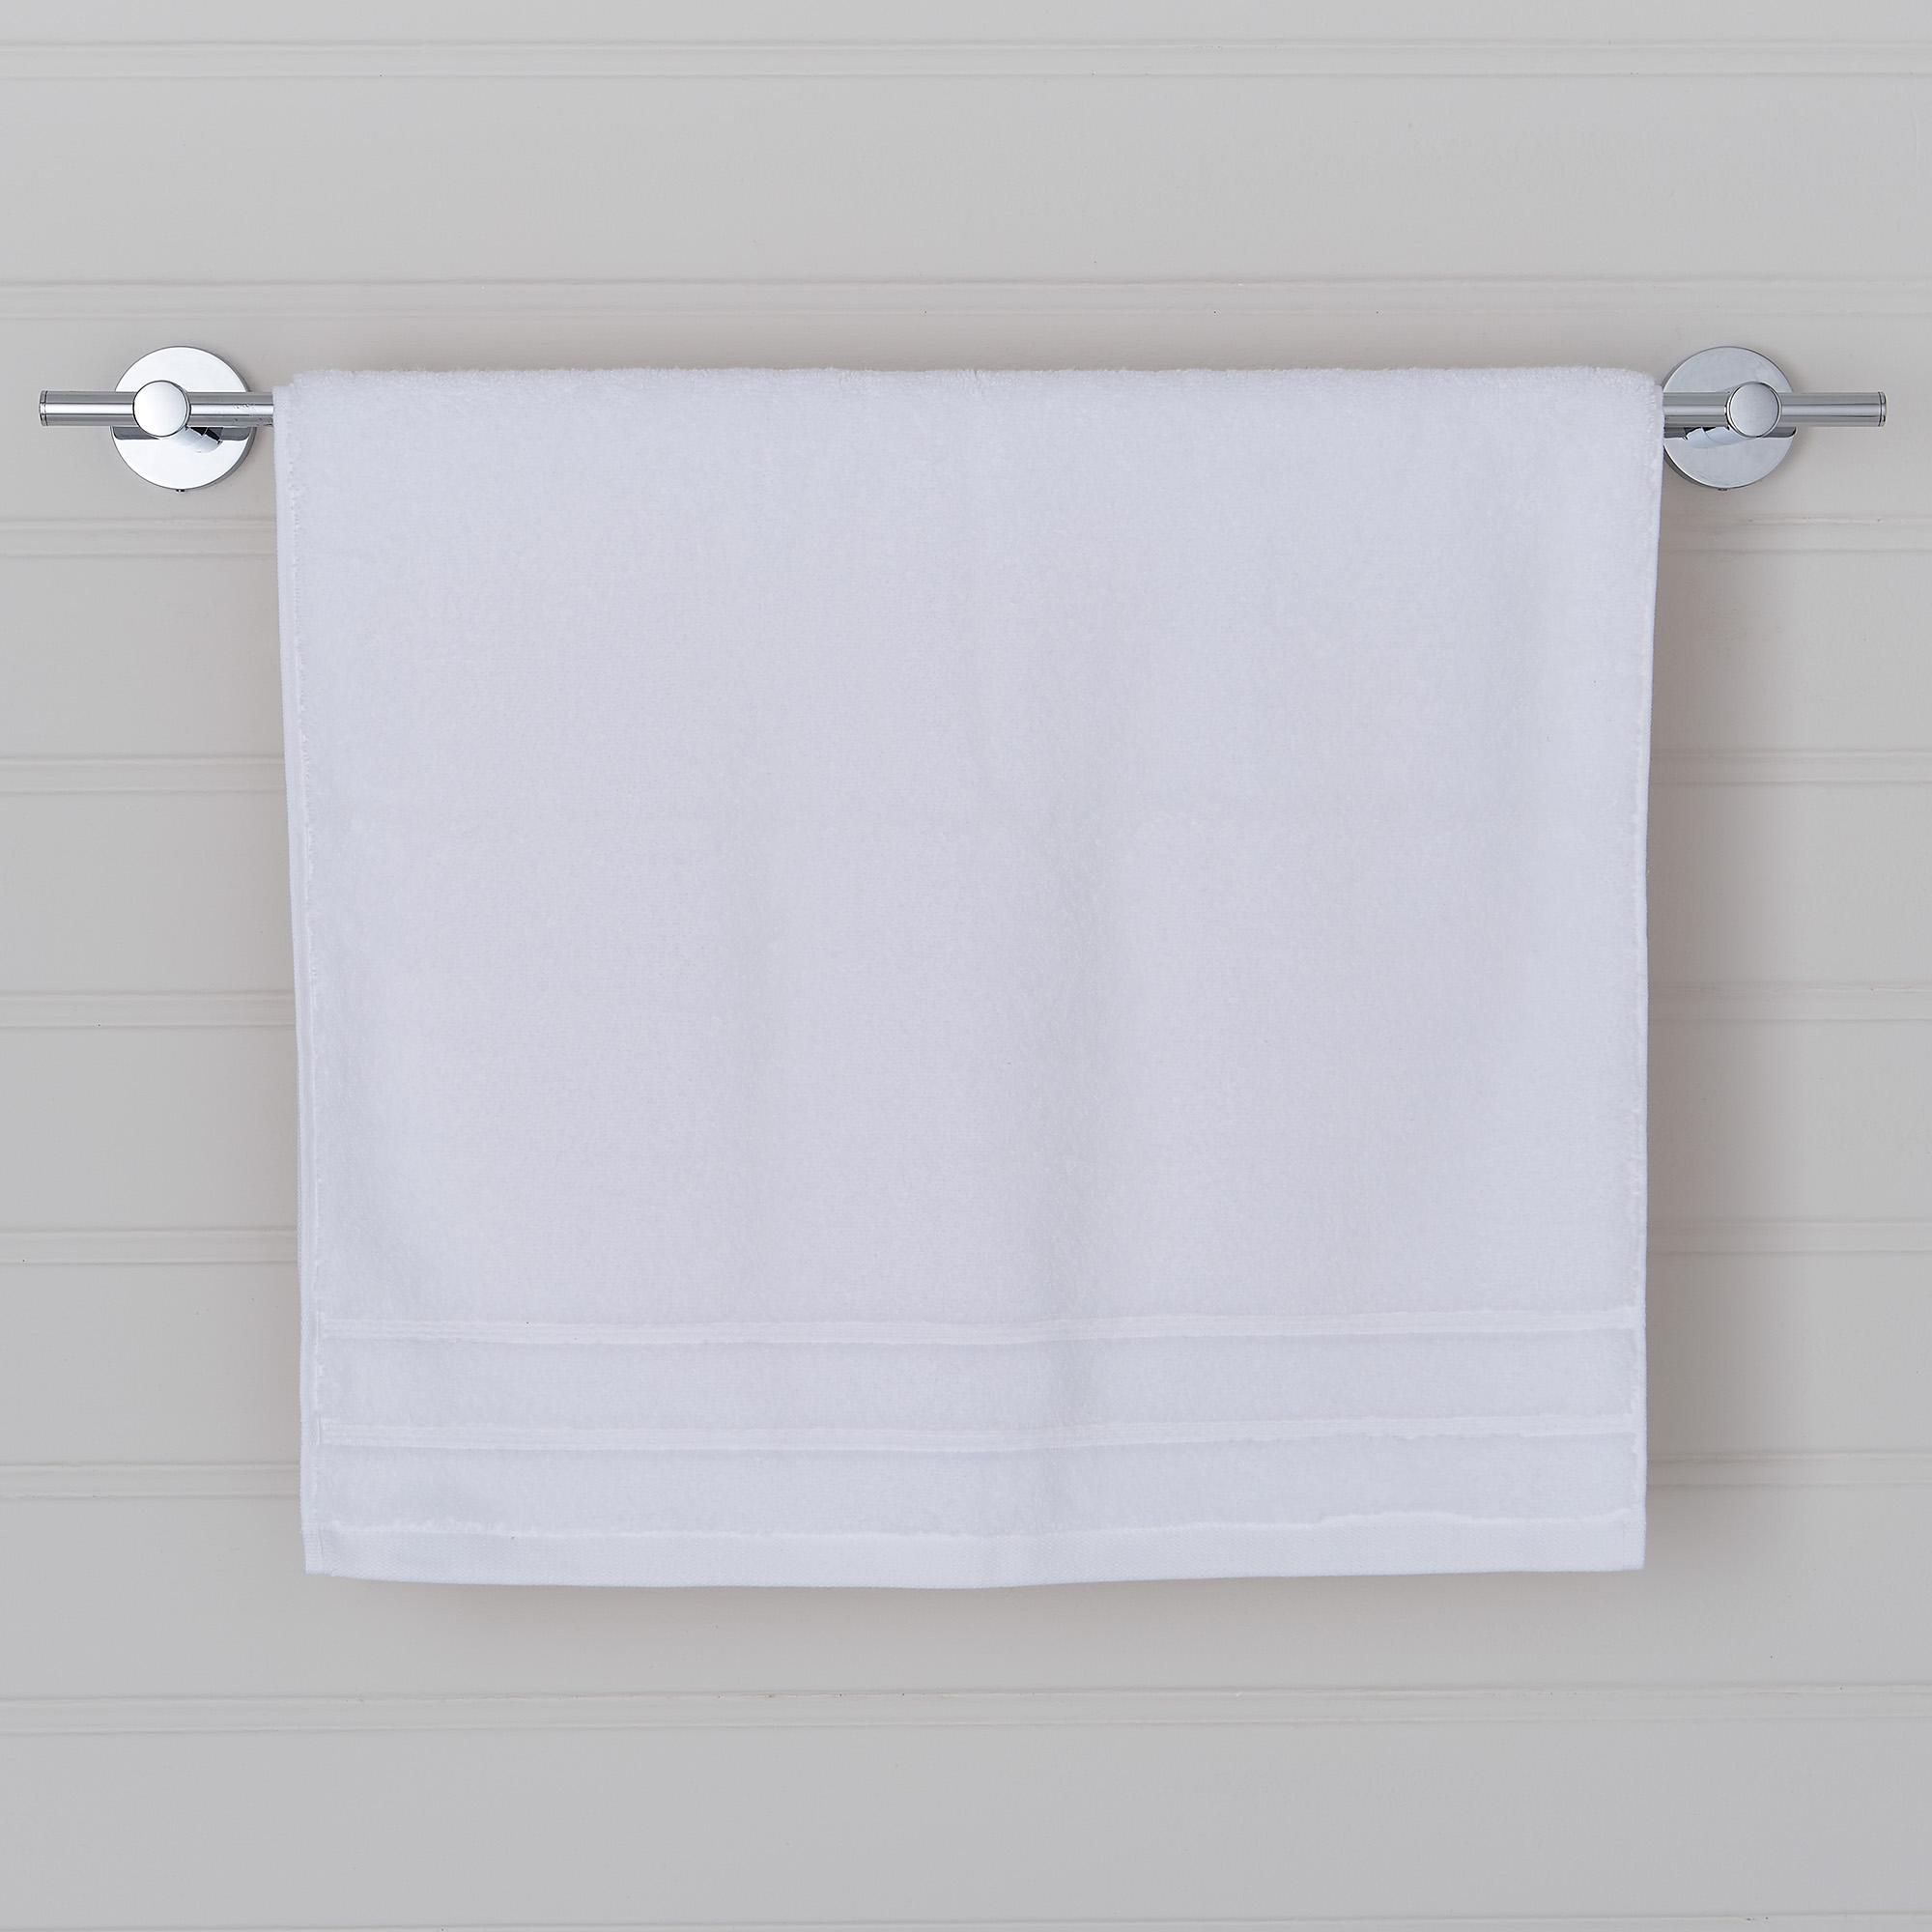 "Price Drop: our range of Ultimate Towels (excluding Guest Towels) are now available at a new lower price. Was from £8, now from £7.Our Extremely Fluffy Towel. These 100% cotton bathroom towels are the ultimate in luxurious opulence, featuring a reduced fibre shedding design and a 600gsm weight quality, these towels come with a zero twist pile for added longevity. Finished in a long-lasting crisp white, and available in a choice of sizes. ""The Dunelm Ultimate Towel range felt luxurious, weighty a"